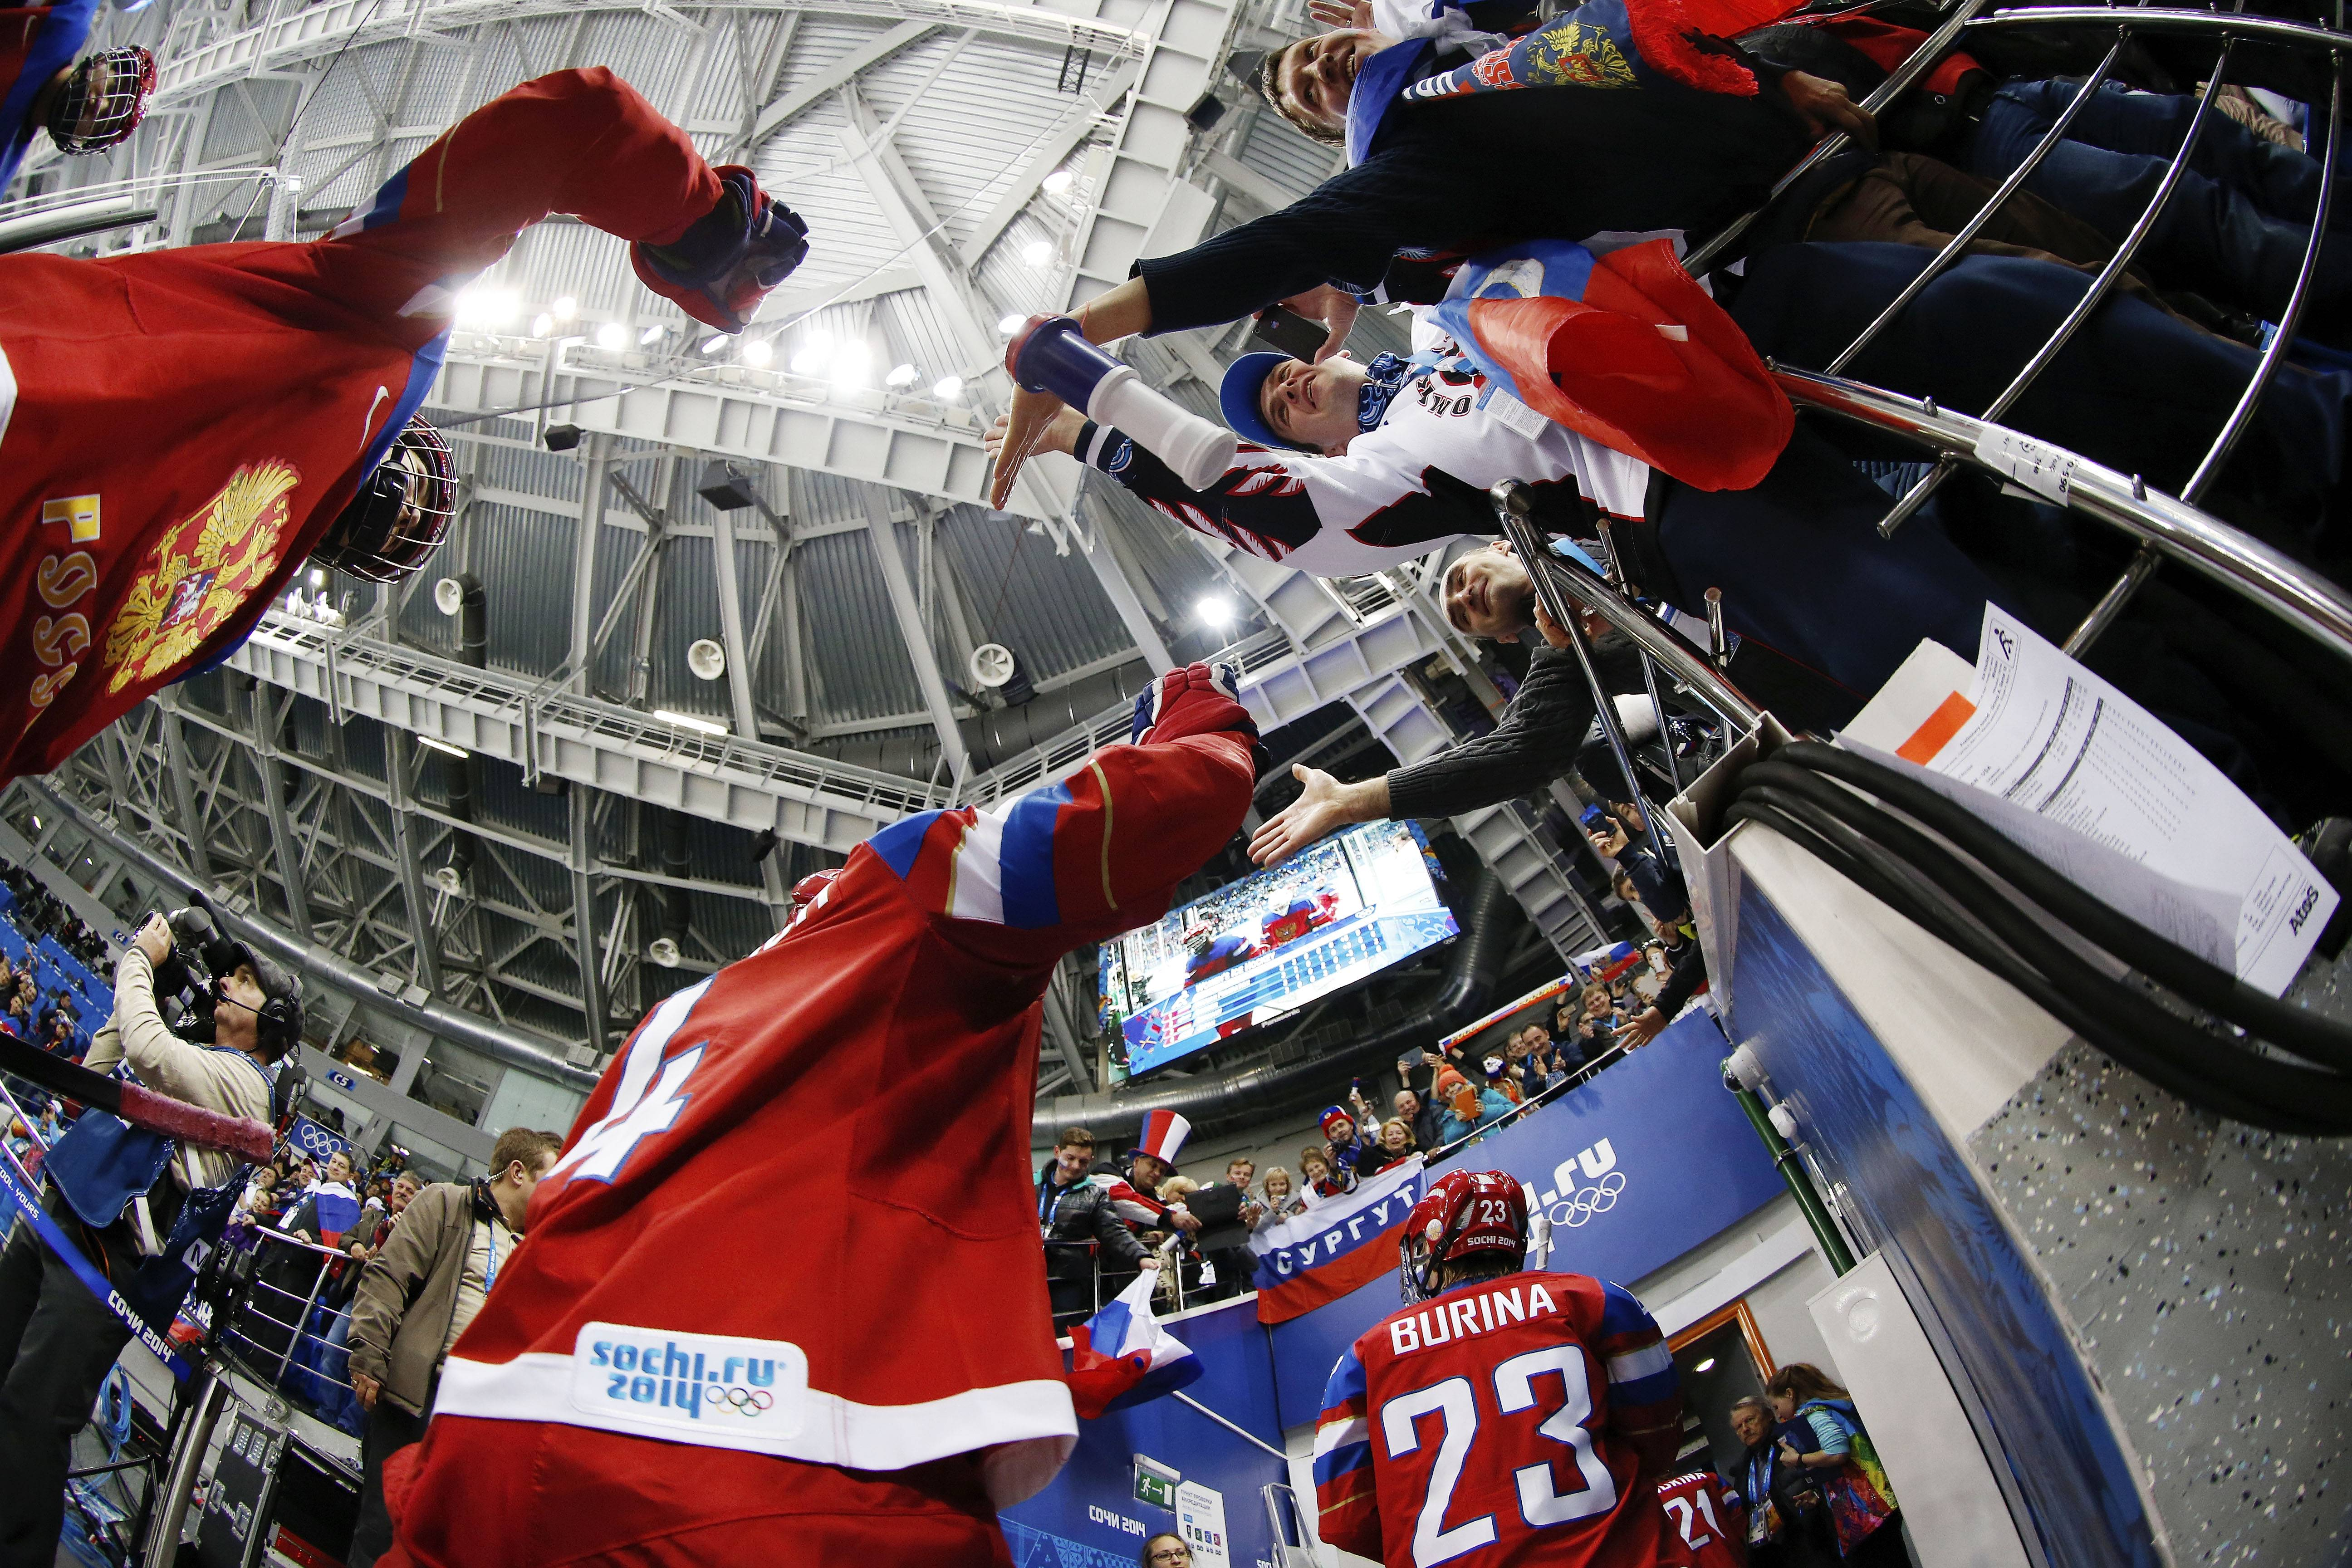 Team Russia leaves the ice after defeating Sweden 3-1 during the 2014 Winter Olympics women's ice hockey game.